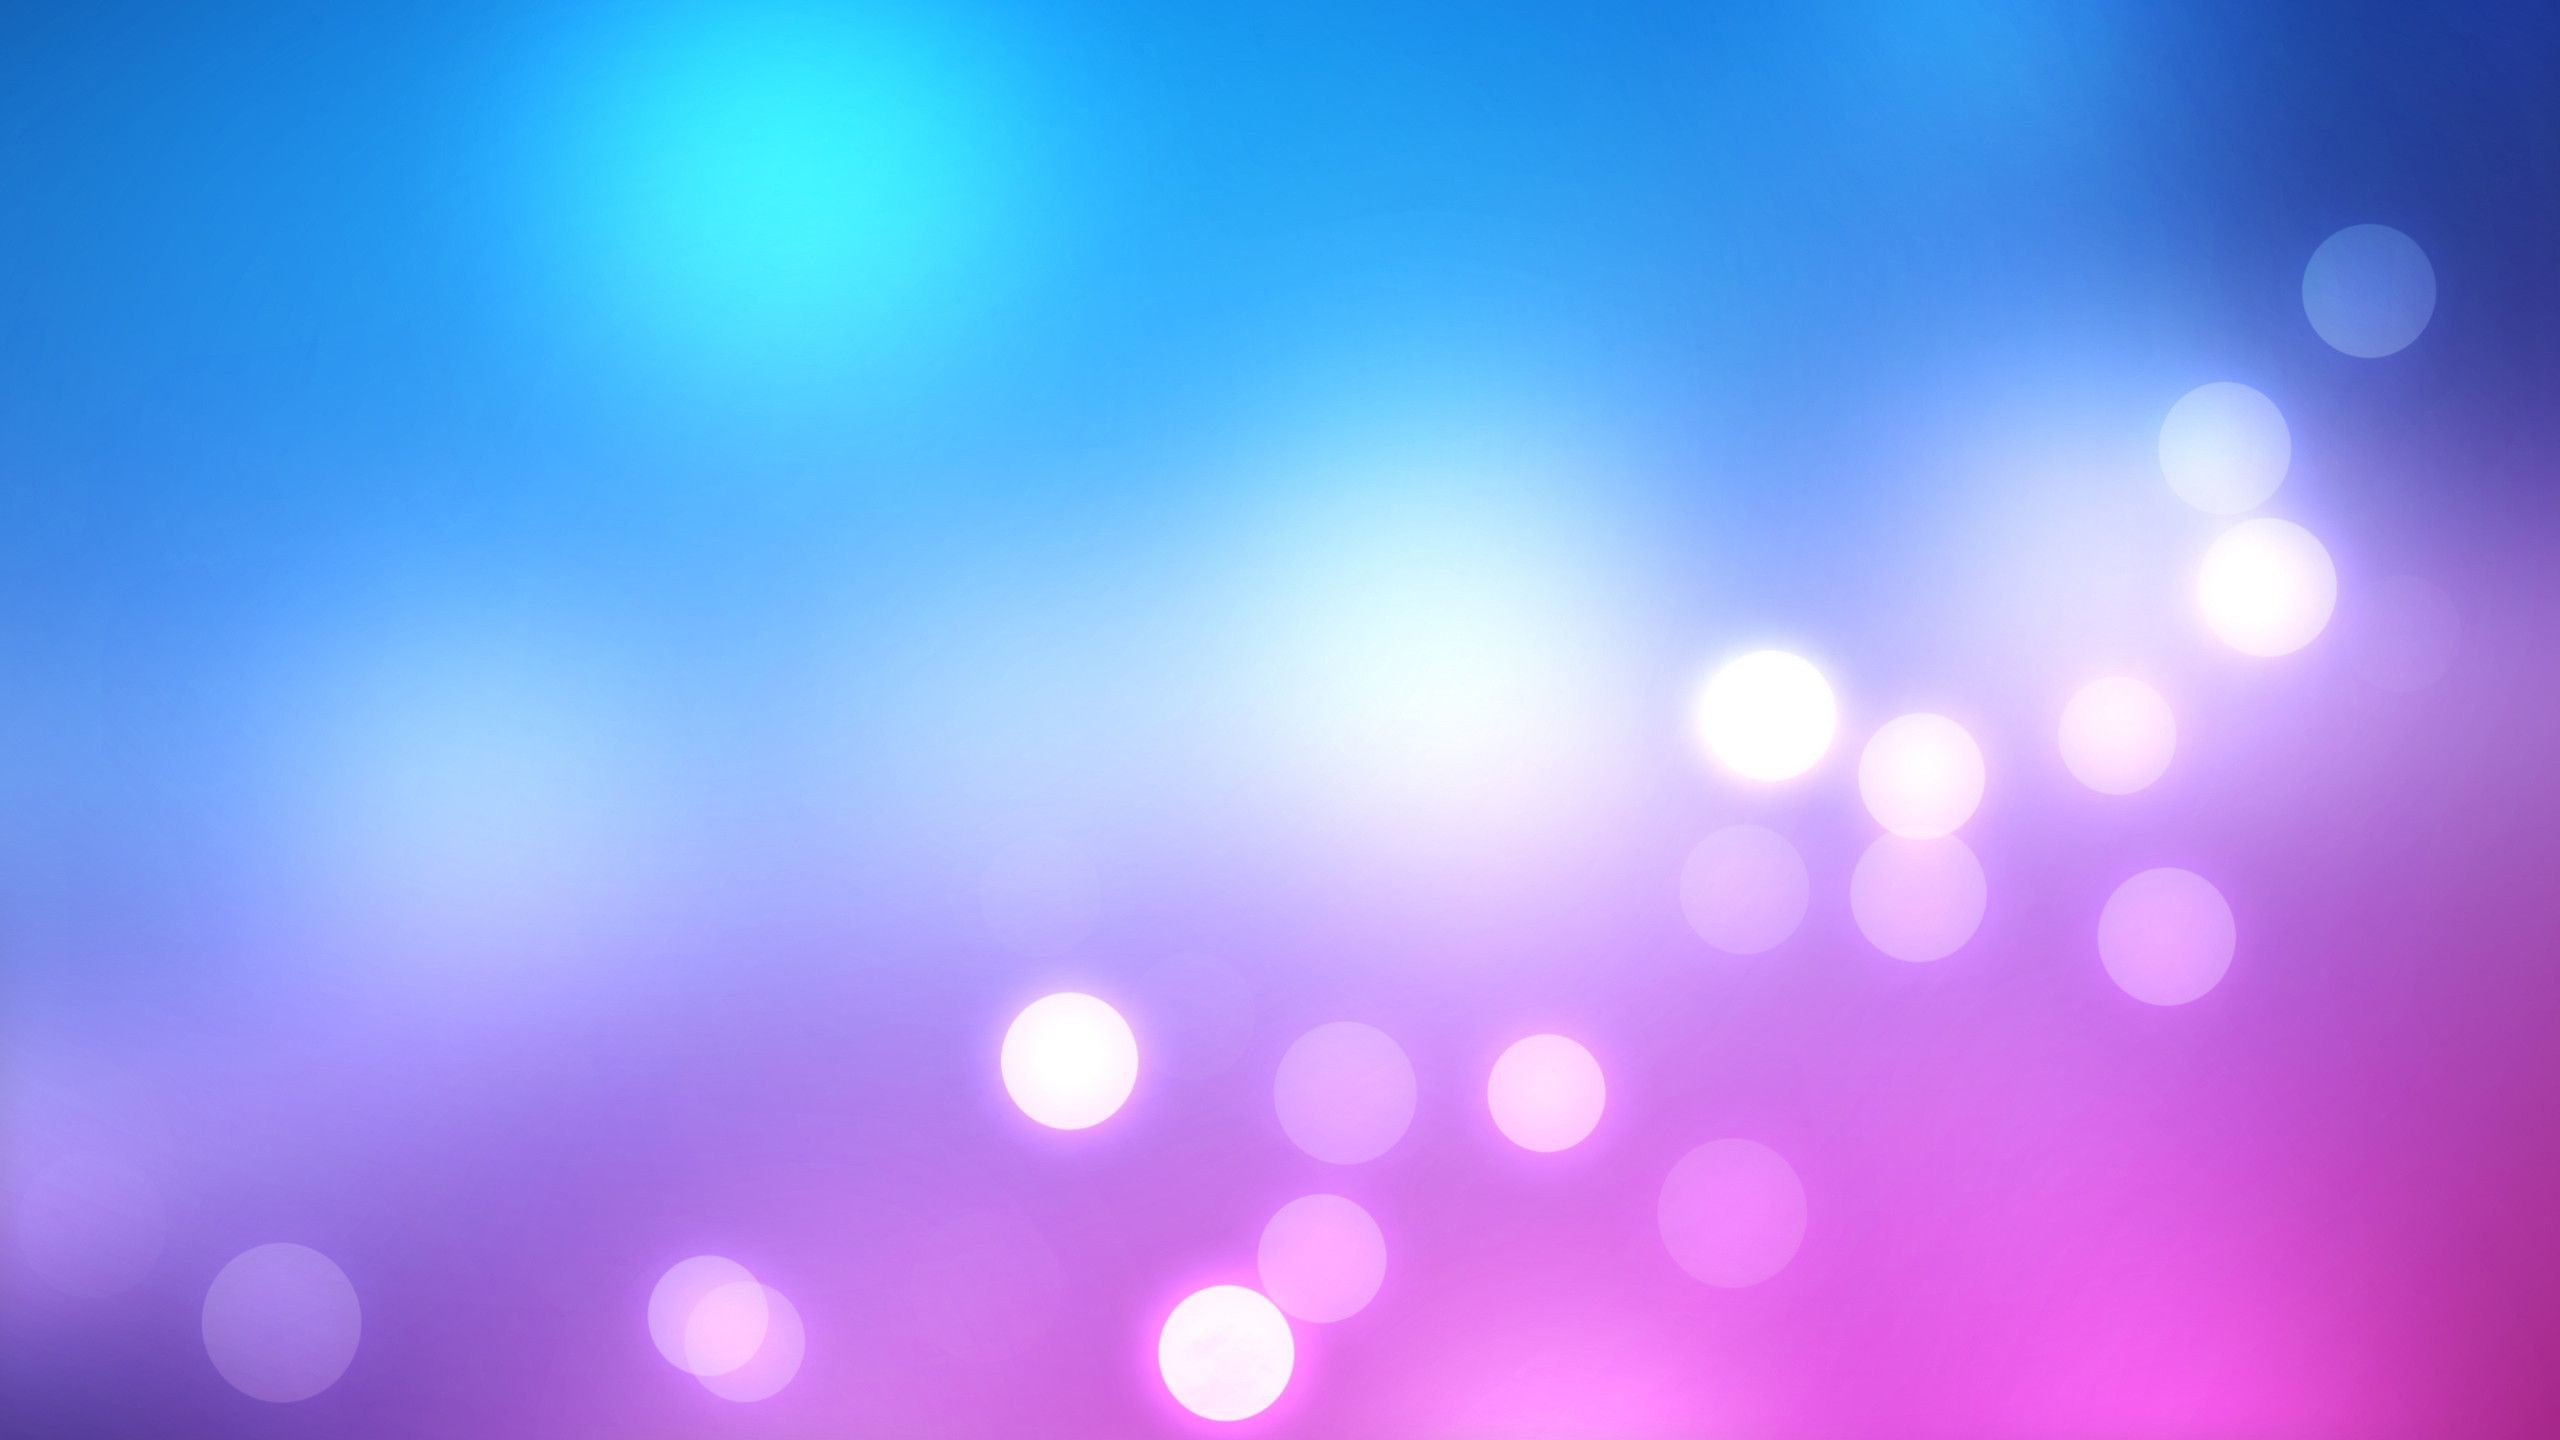 2560x1440 Pink Purple And Blue Backgrounds - Wallpaper Cave